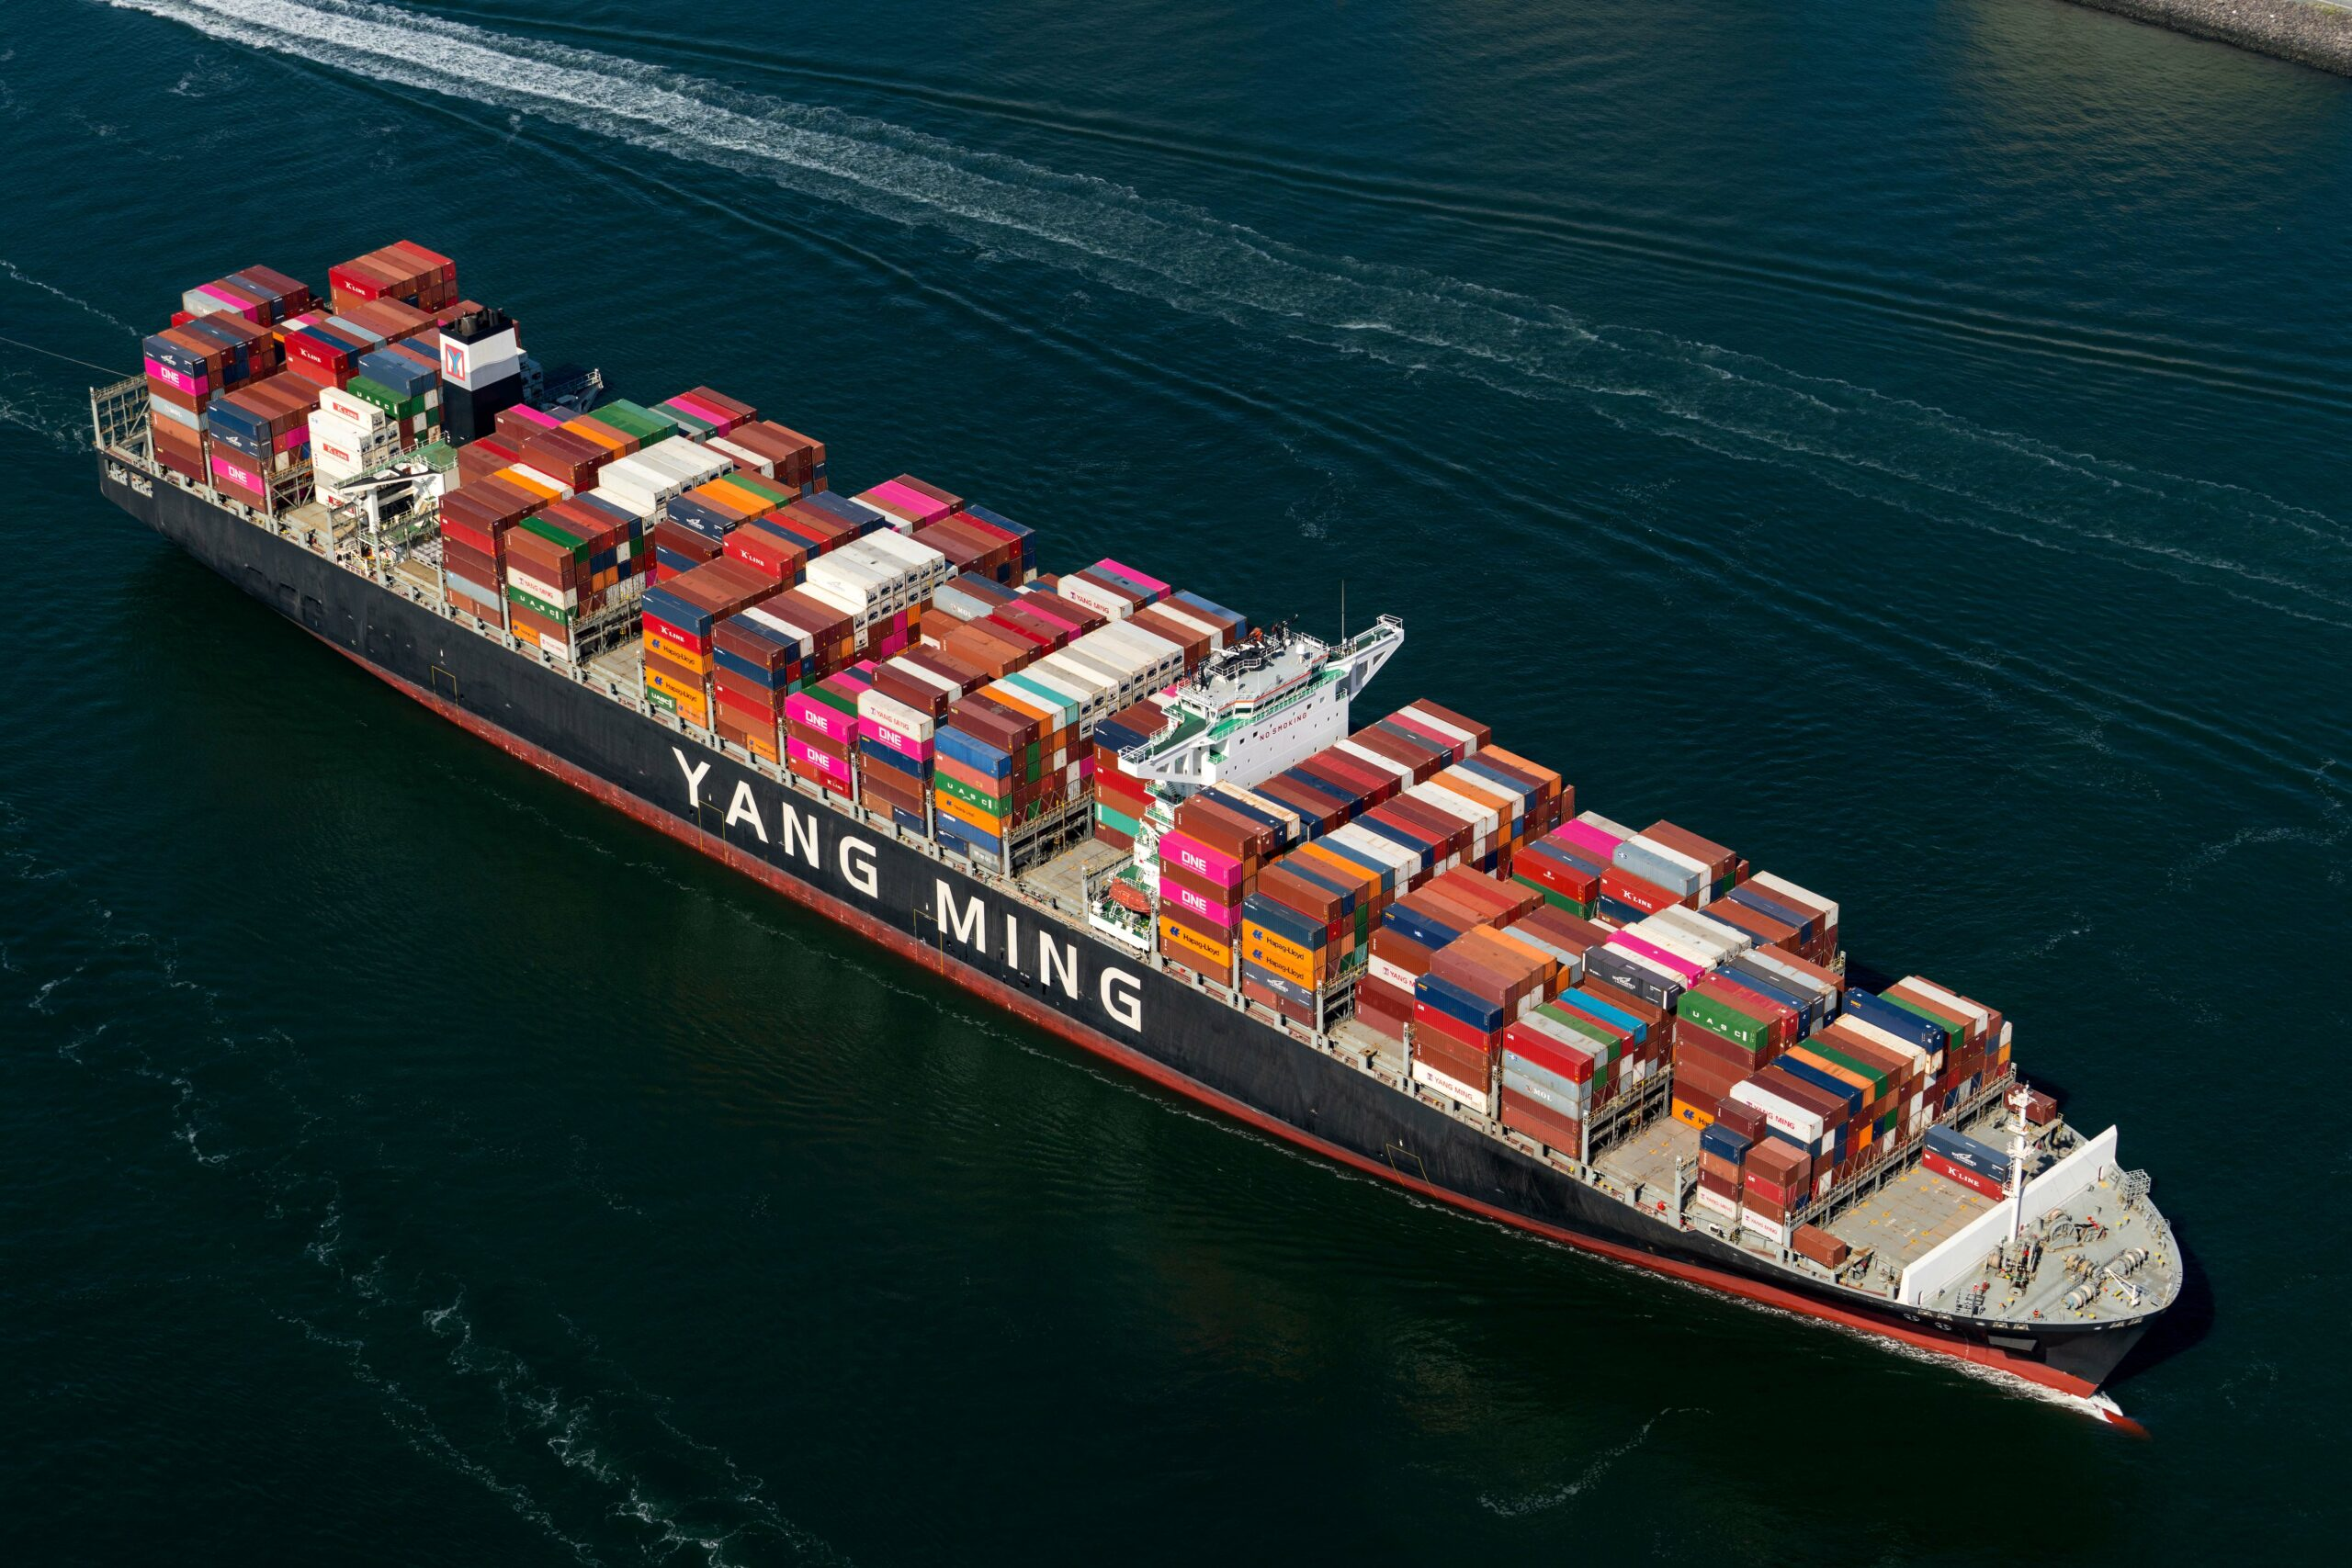 Yang Ming announces operating profit of $ 18 million during H1 2020 1